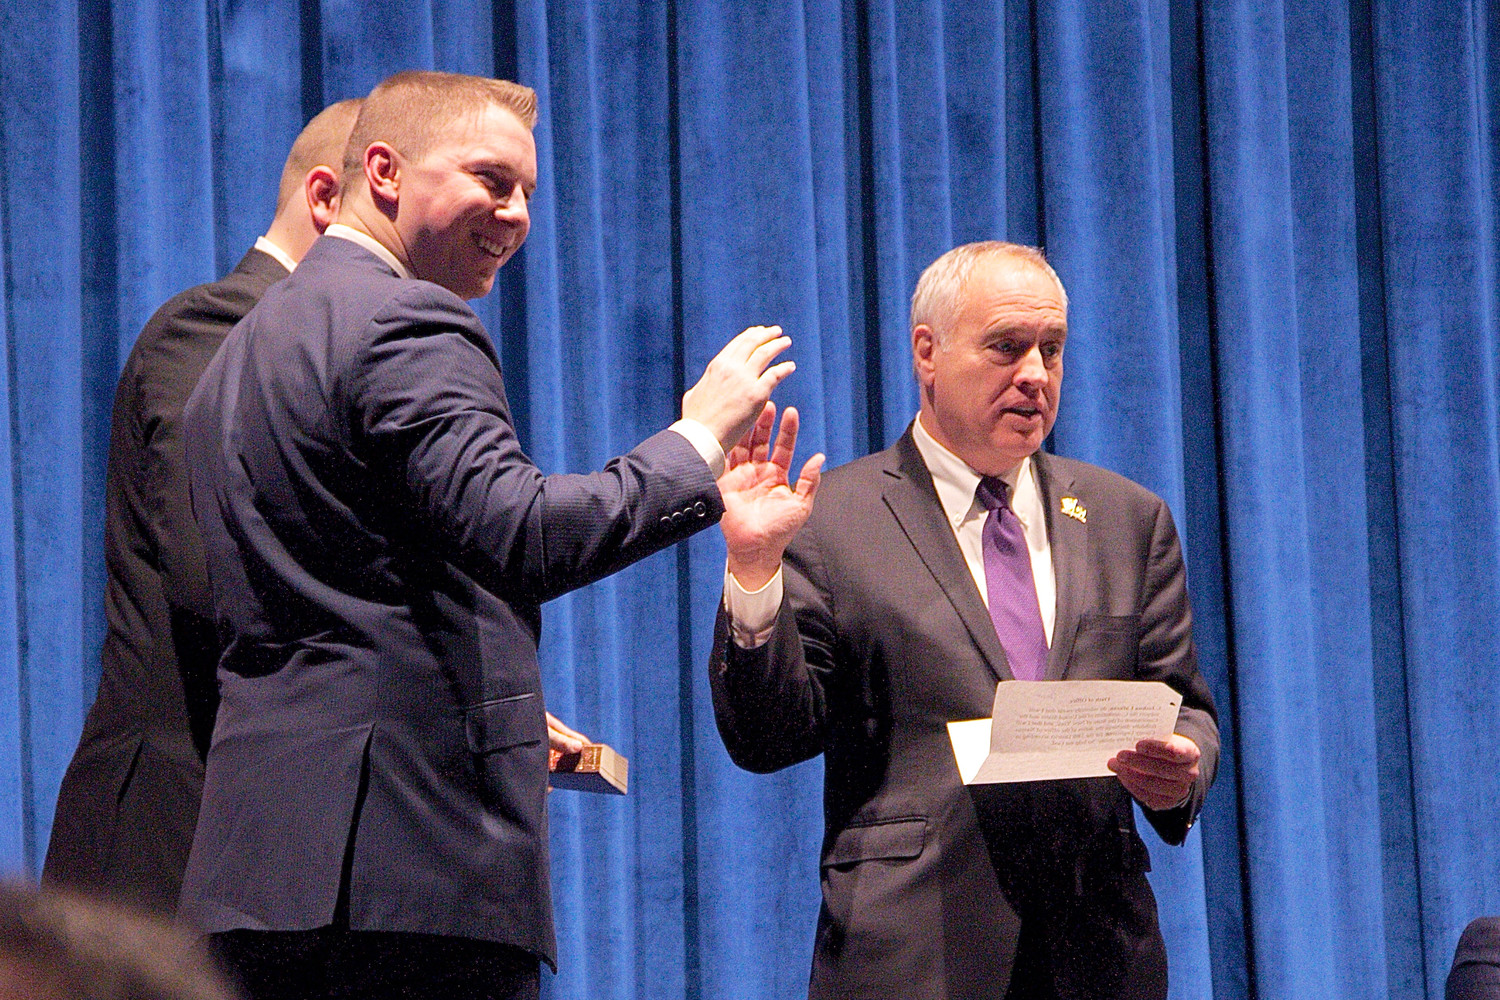 State Comptroller Thomas DiNapoli, right, swore in Josh Lafazan at a special inauguration ceremony on Tuesday.